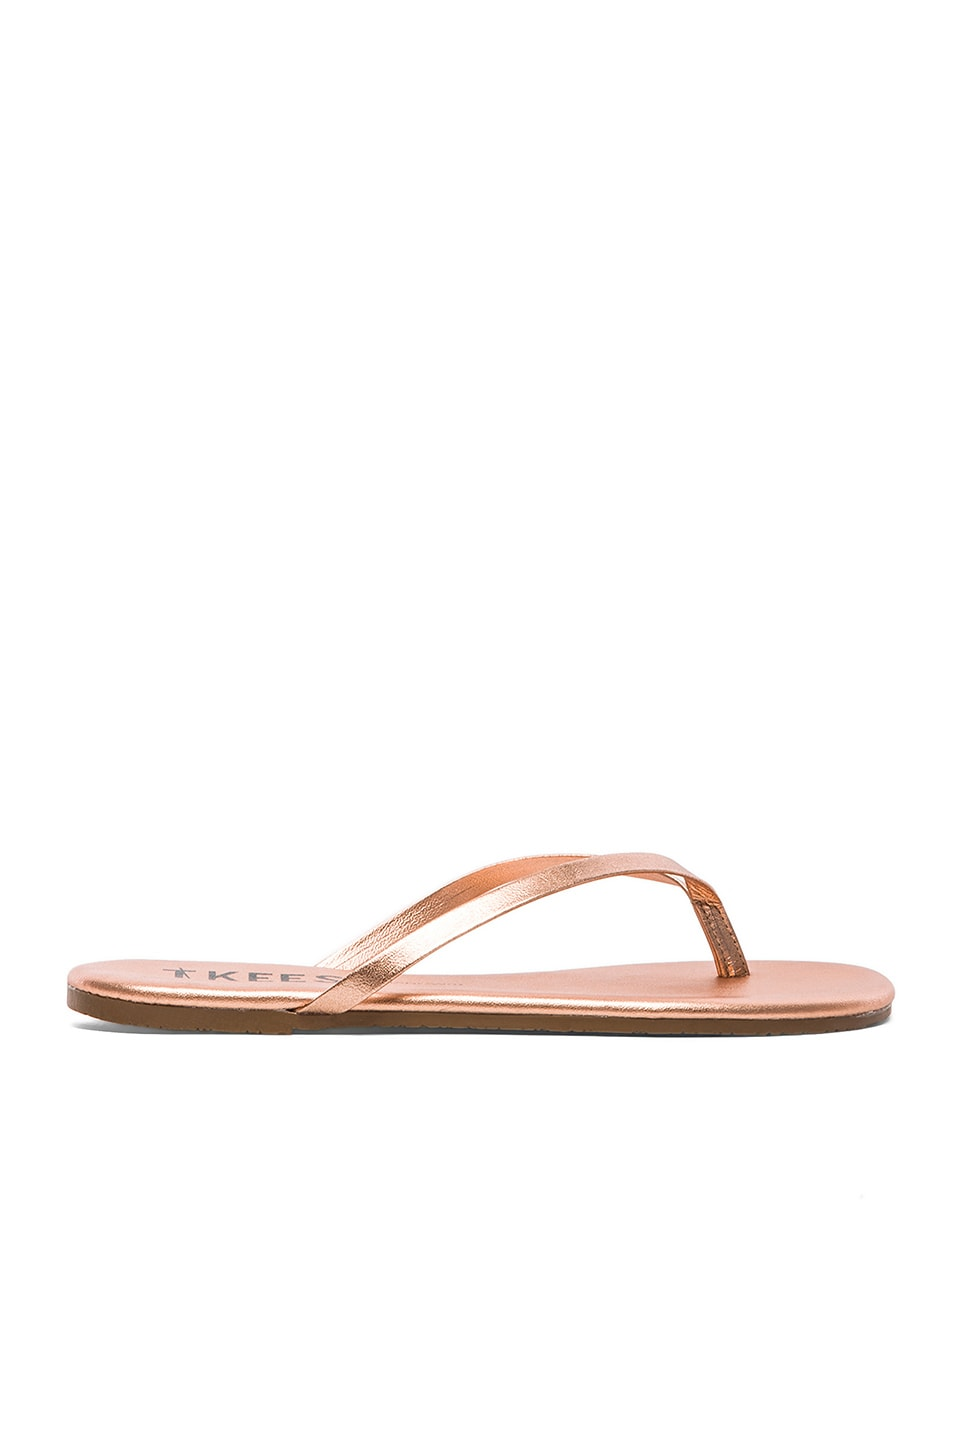 TKEES Sandal in Beach Pearl